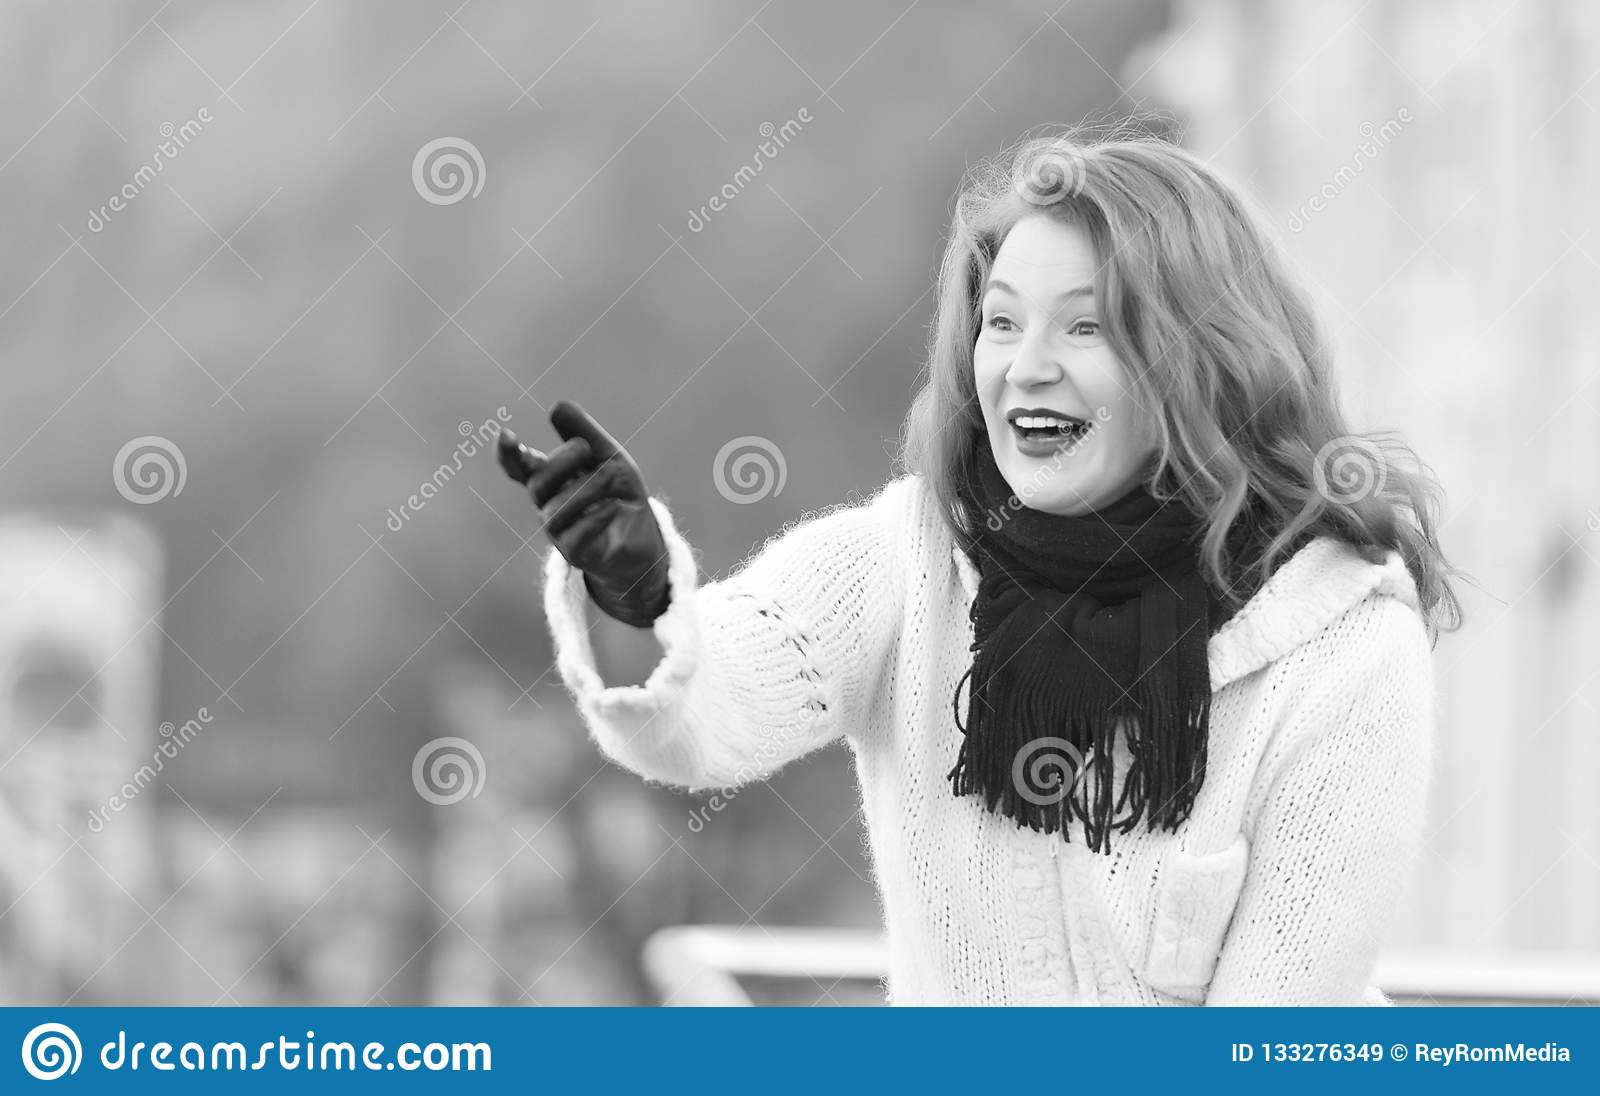 Attractive lady in white knitted coat and scurf. woman exited welcome on street.